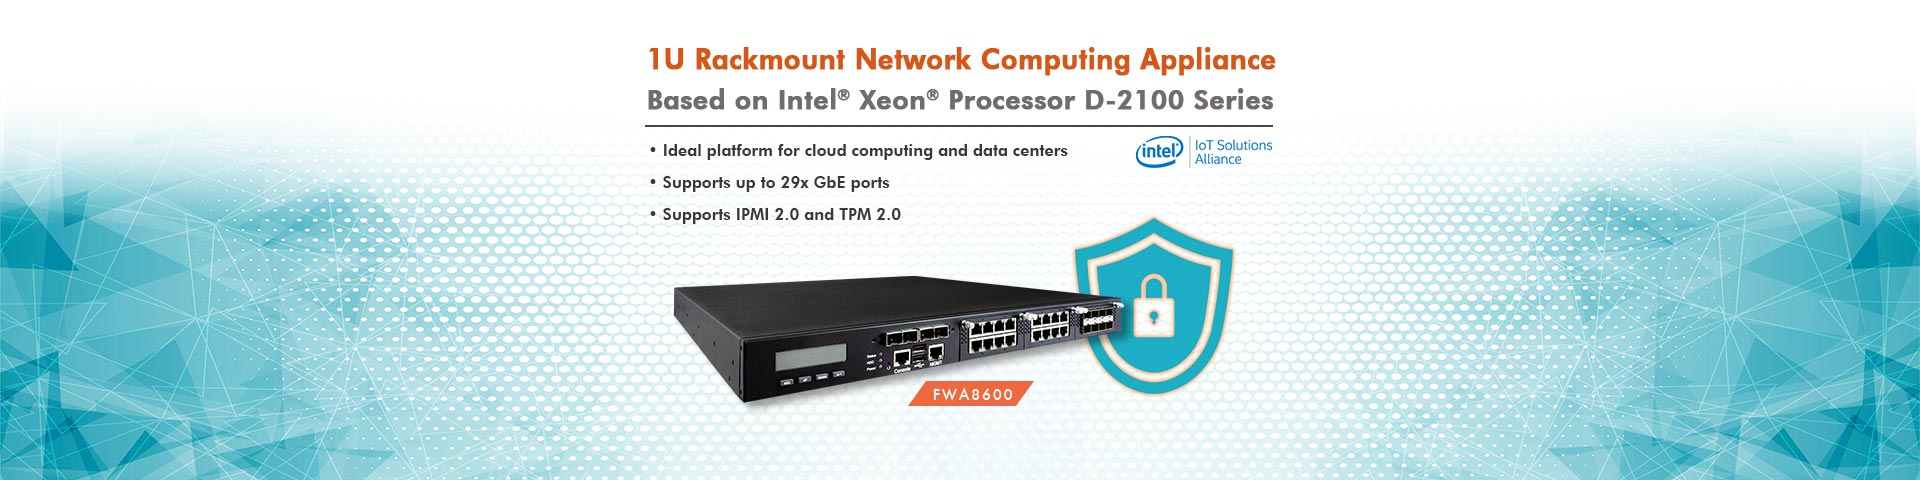 1U Rackmount Network Computing Appliance with Intel® Xeon® Processor D-2100